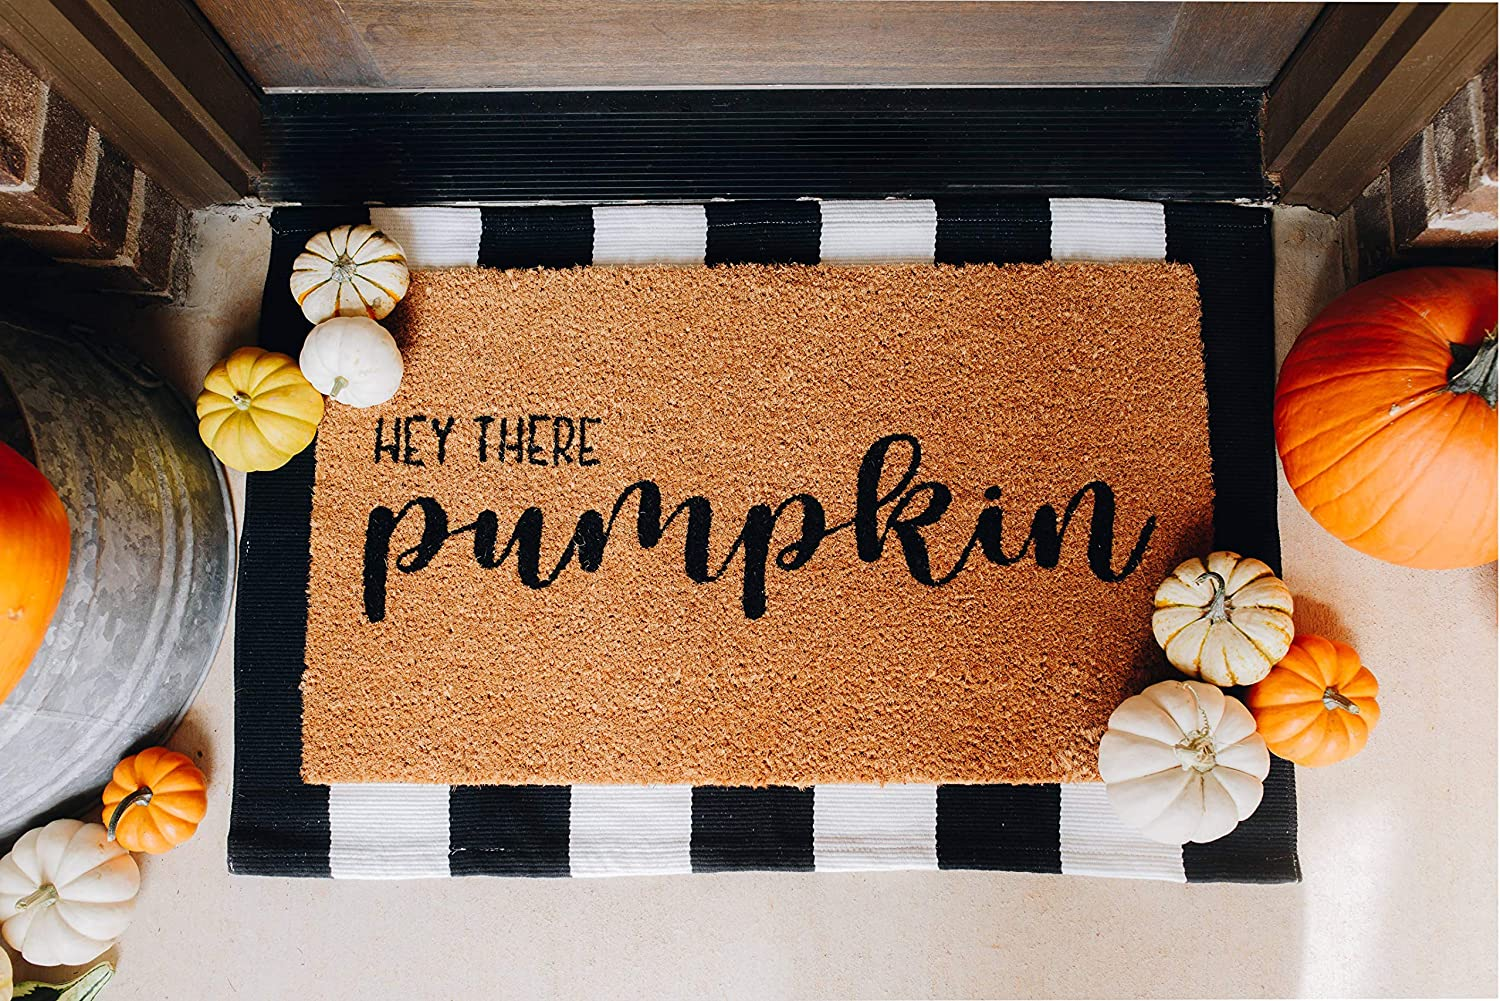 Coconut Coir and Woven Doormat Combo Inside or Outside Pet Friendly Rug for Entry Porch or Patio Layered Outdoor Hey Pumpkin Mat Set 17-inch x 30-inch Black and White Stripe 24-inch x 35-inch